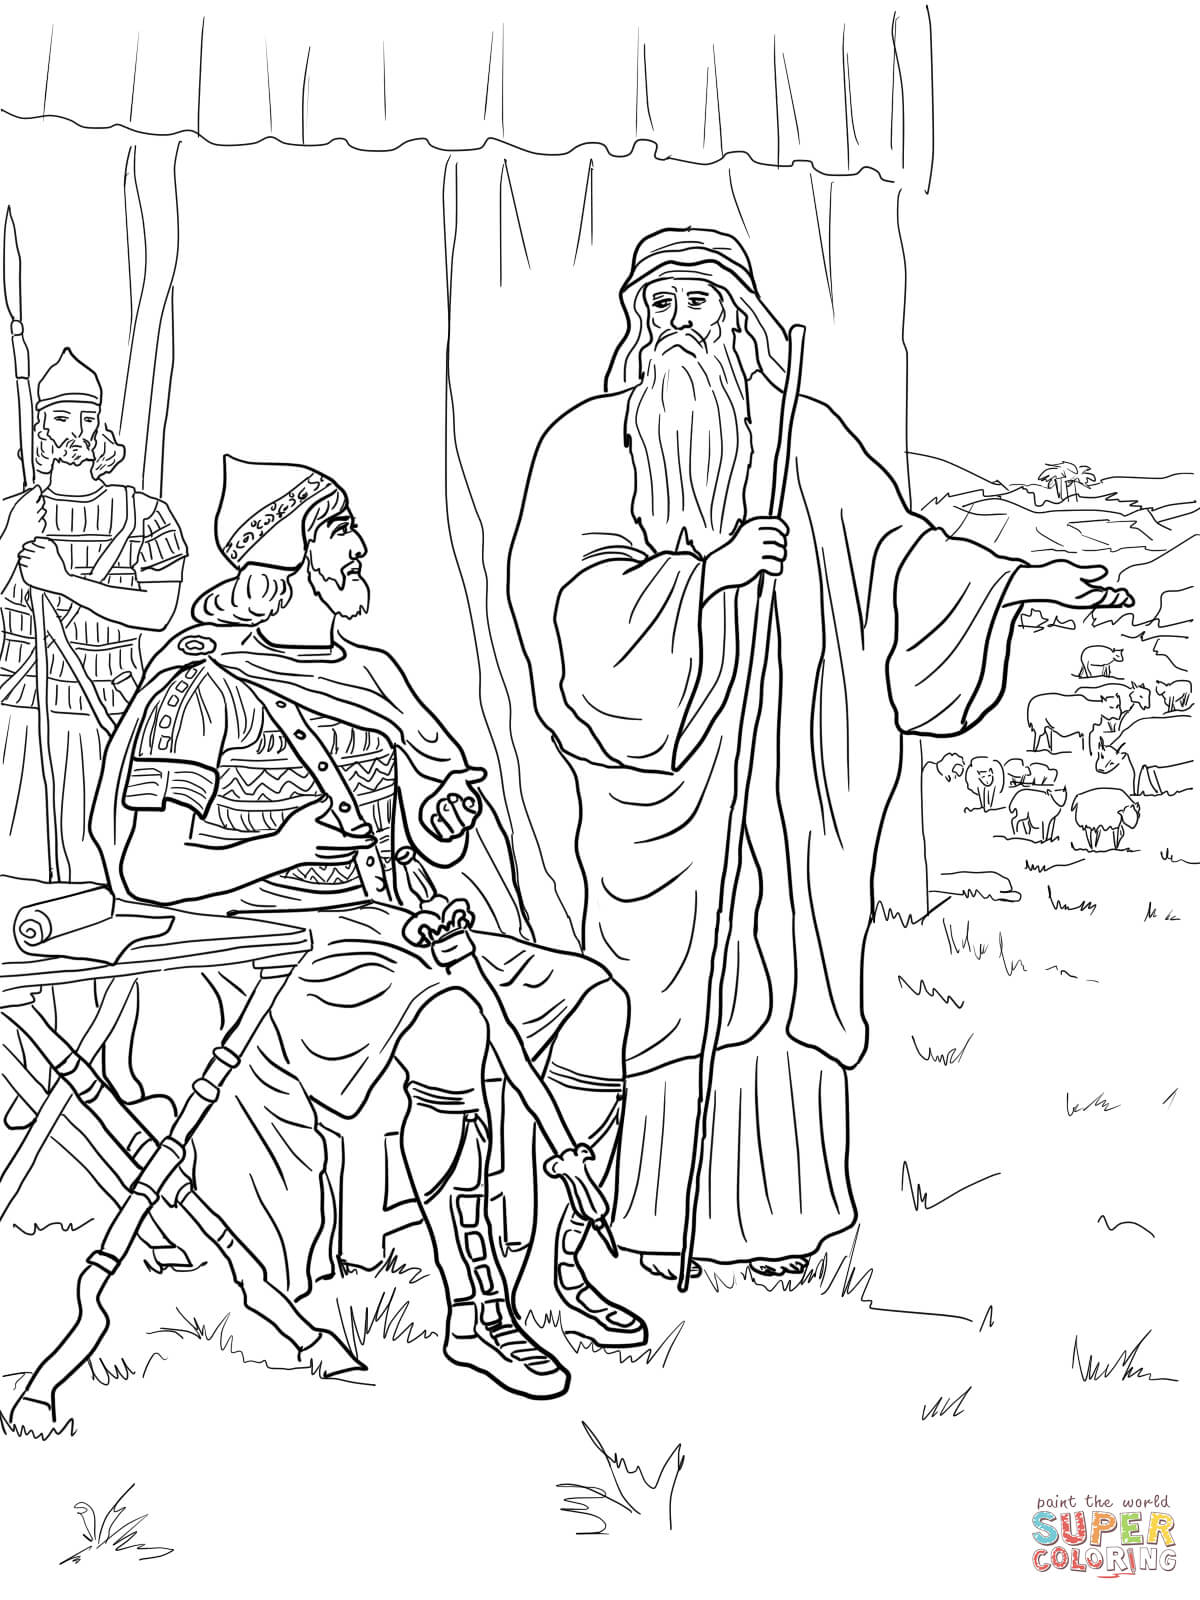 coloring pages for king saul - photo#1